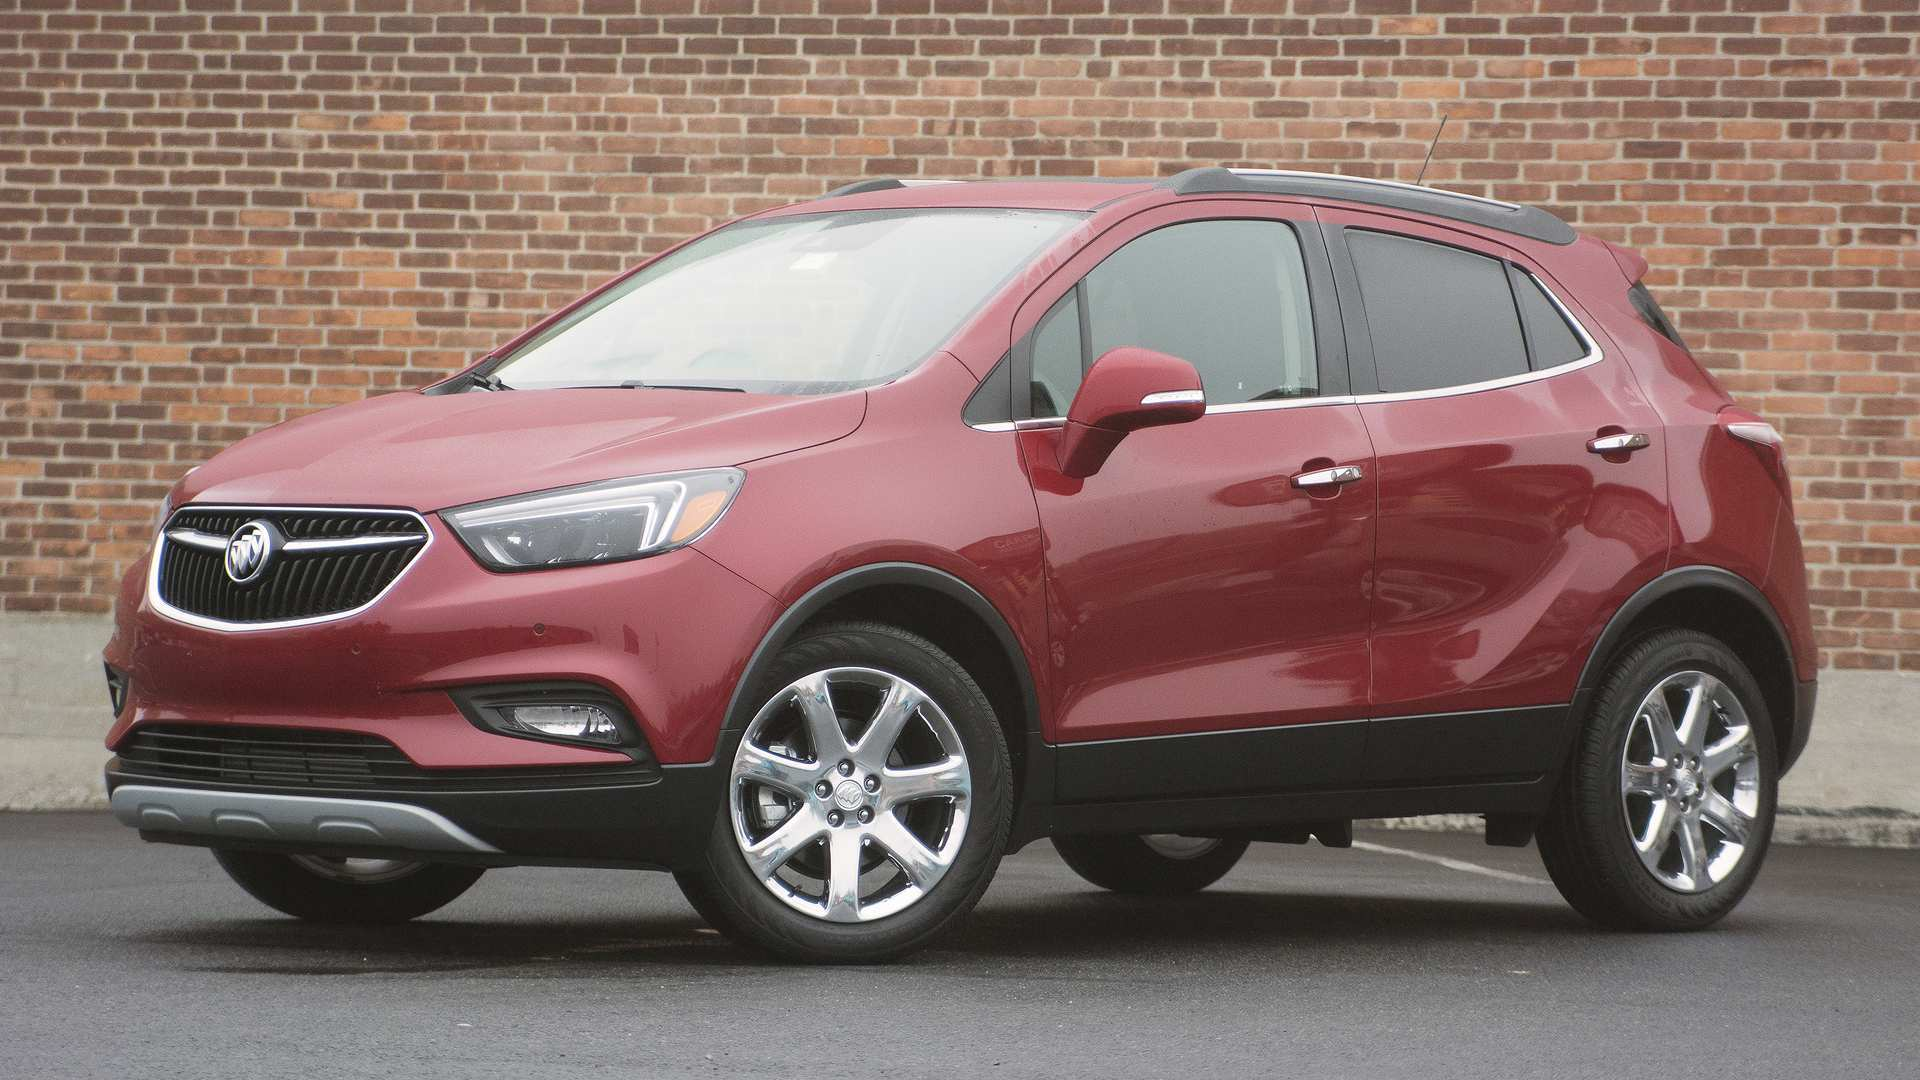 51 The Best 2020 Buick Encore Colors Specs